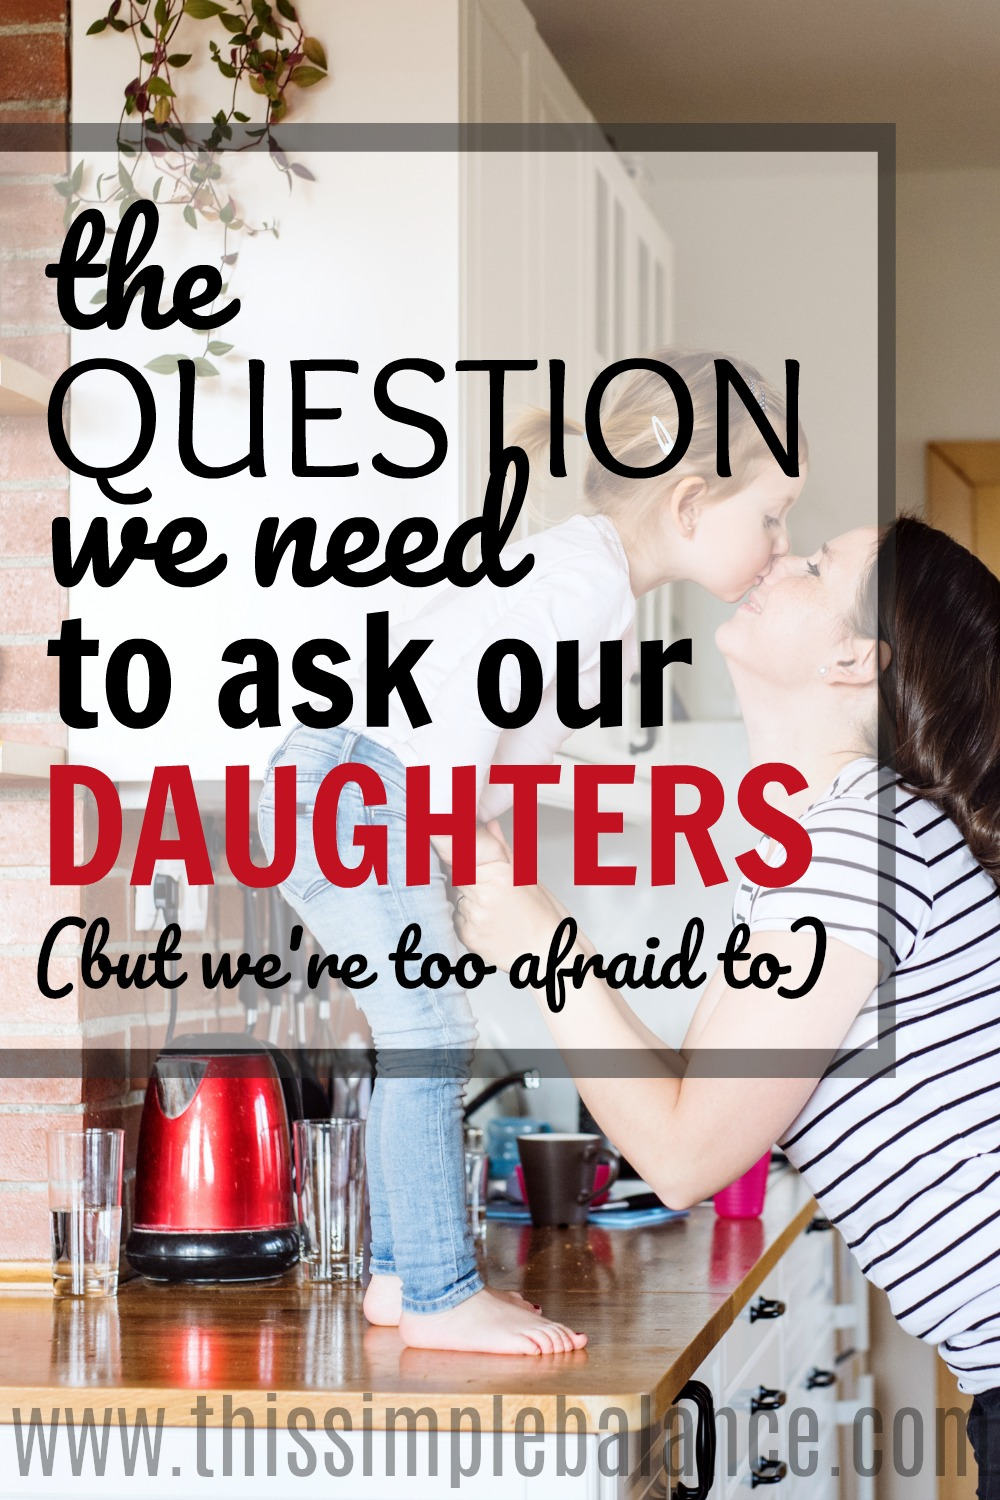 Parenting often means asking hard questions, having challenging conversations - ones we're not really sure how to navigate. I wish someone had asked me this question. I wish I had thought about the future with this in mind, and now I have the chance to ask MY daughter. This advice might change nothing, but it just might change everything.